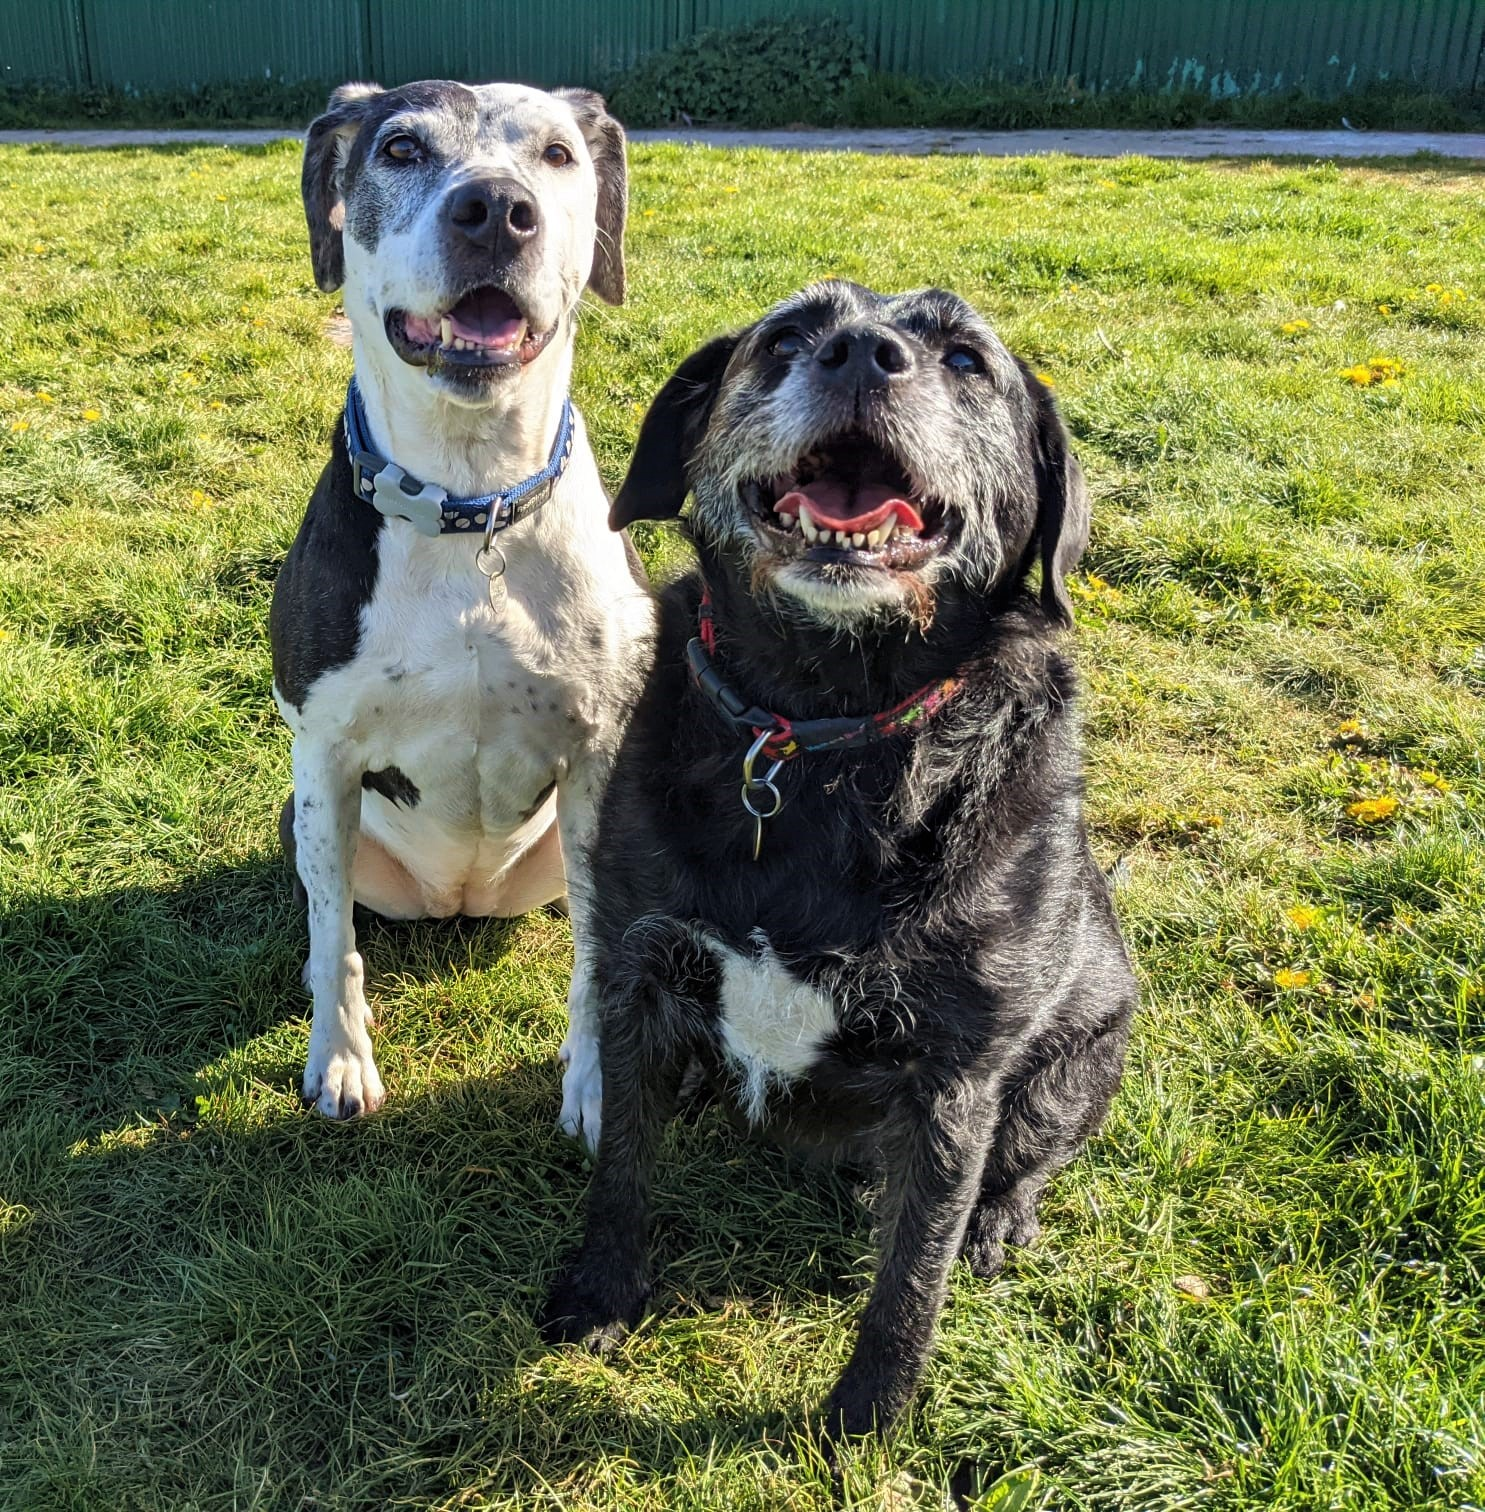 Best doggy pals in search of new home together?